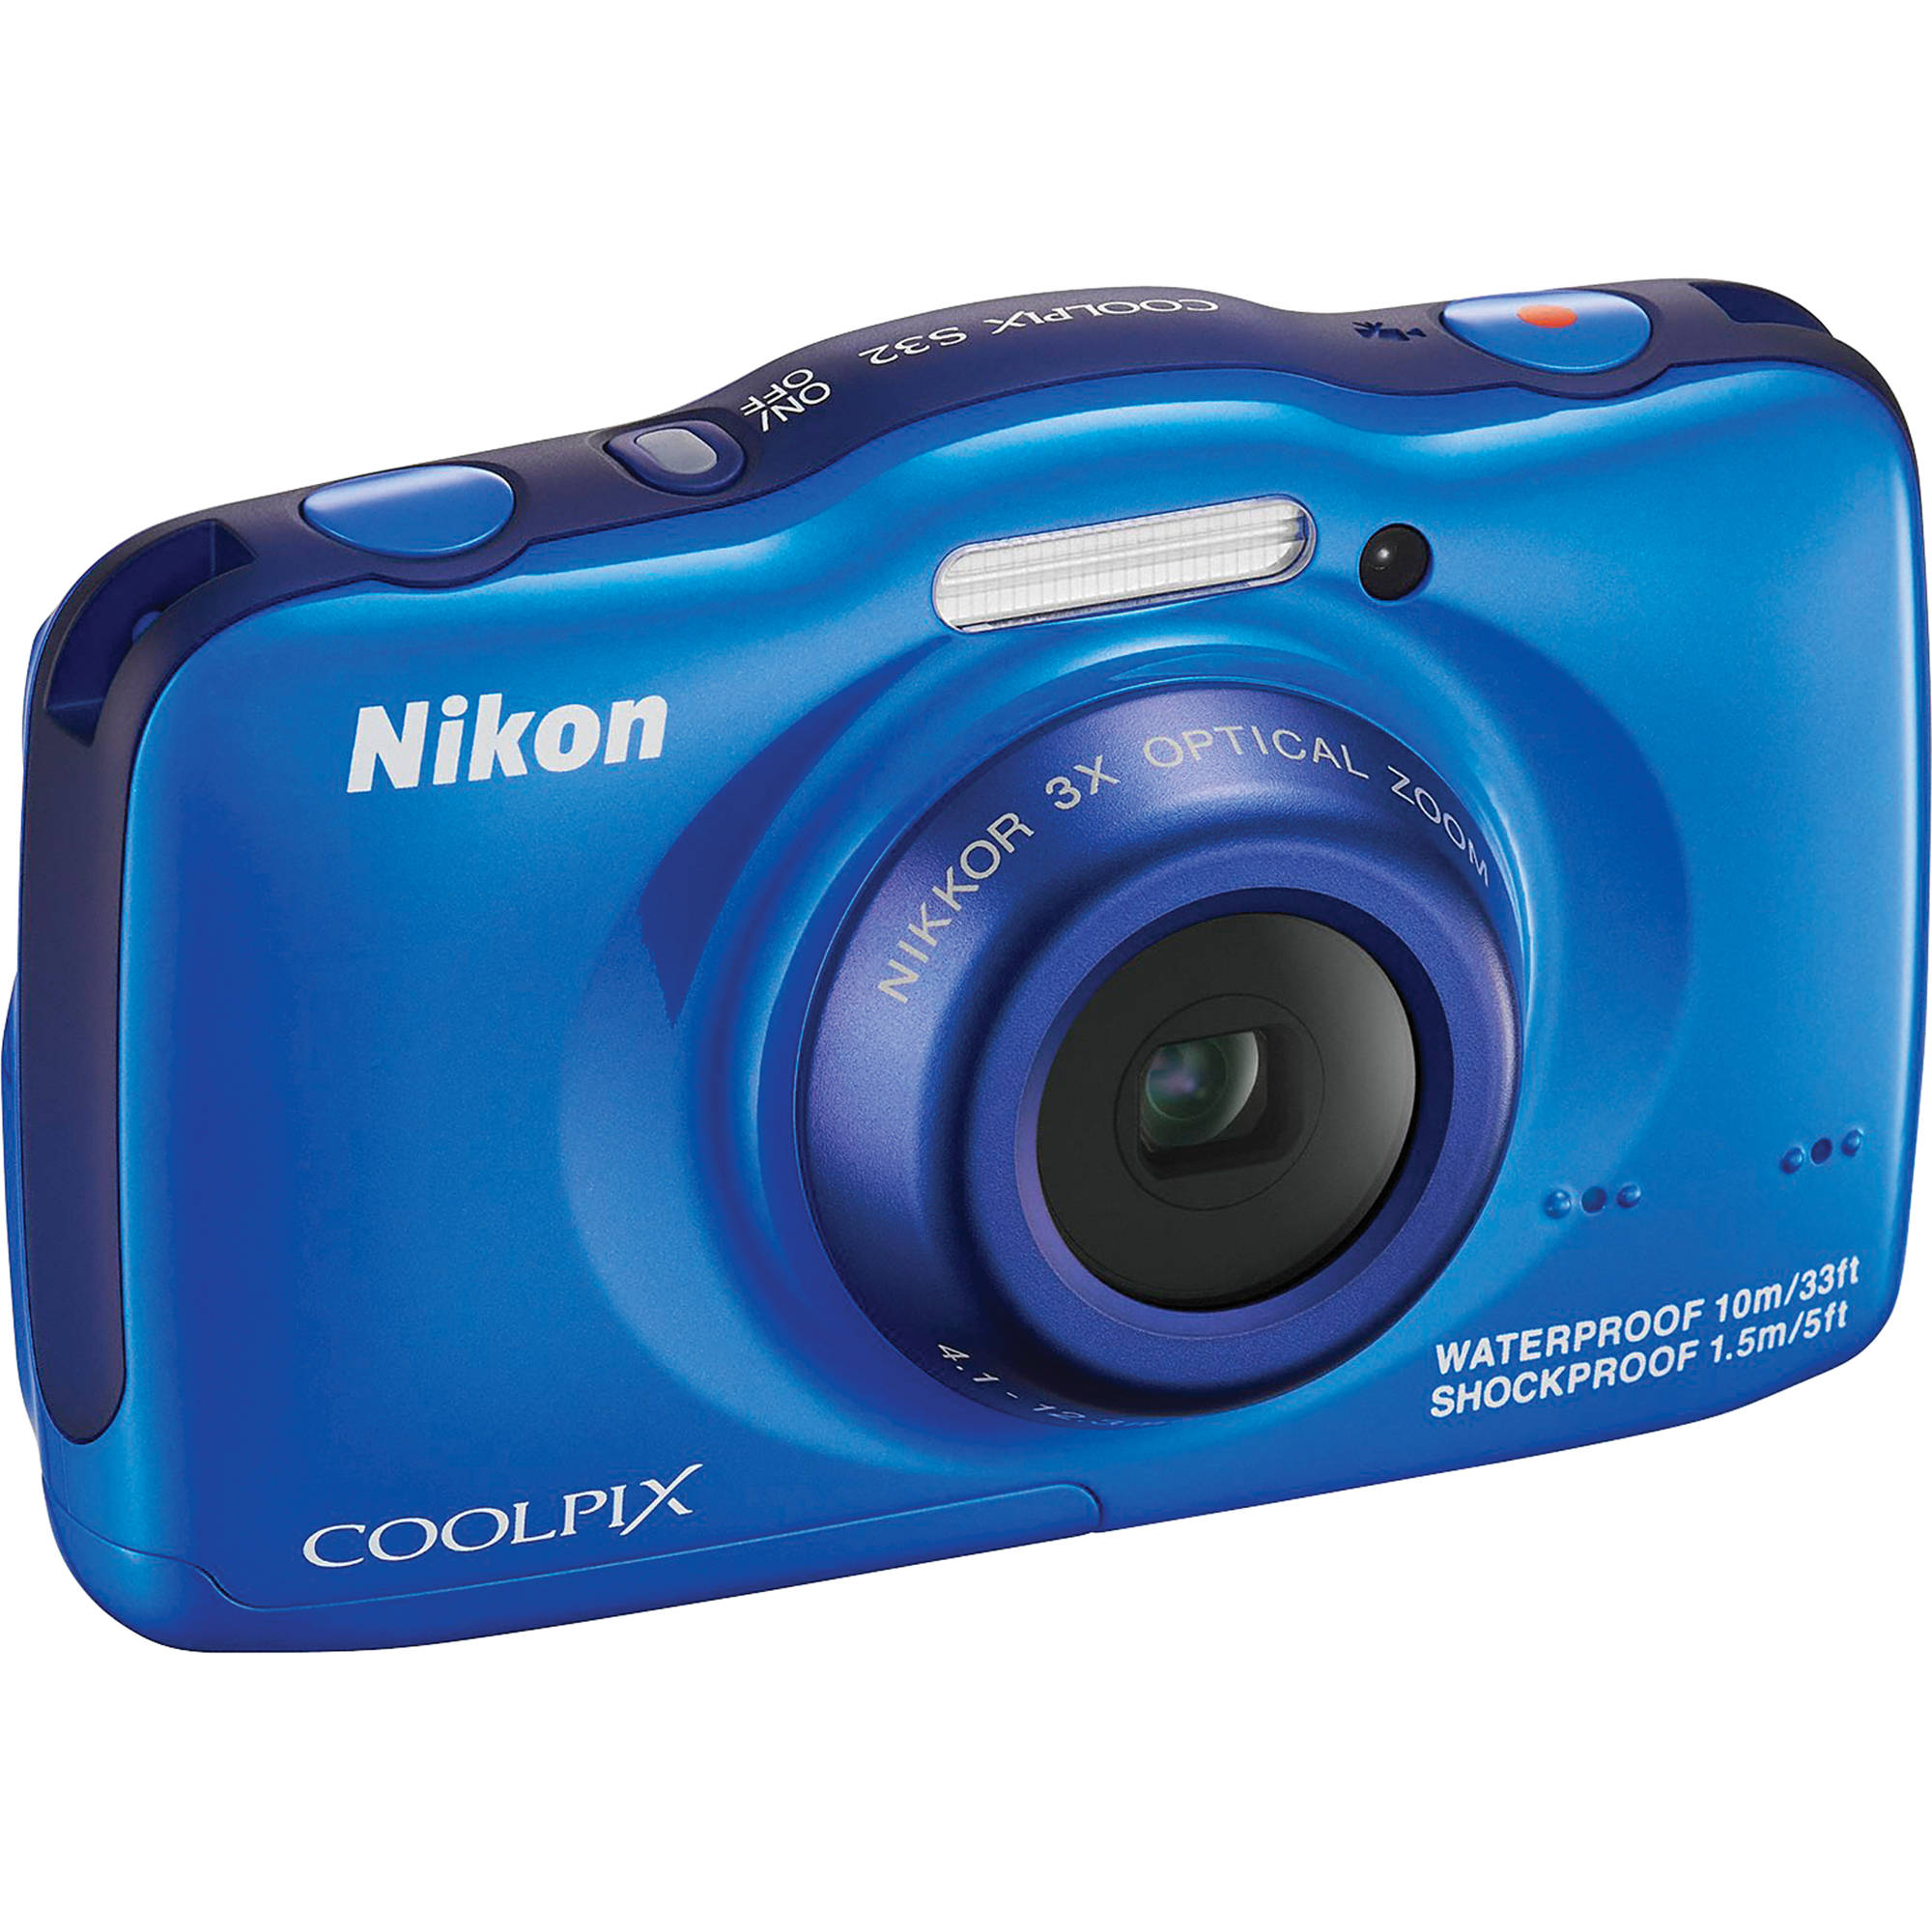 Nikon COOLPIX S32 Digital Camera (Blue) 26461 B&H Photo Video